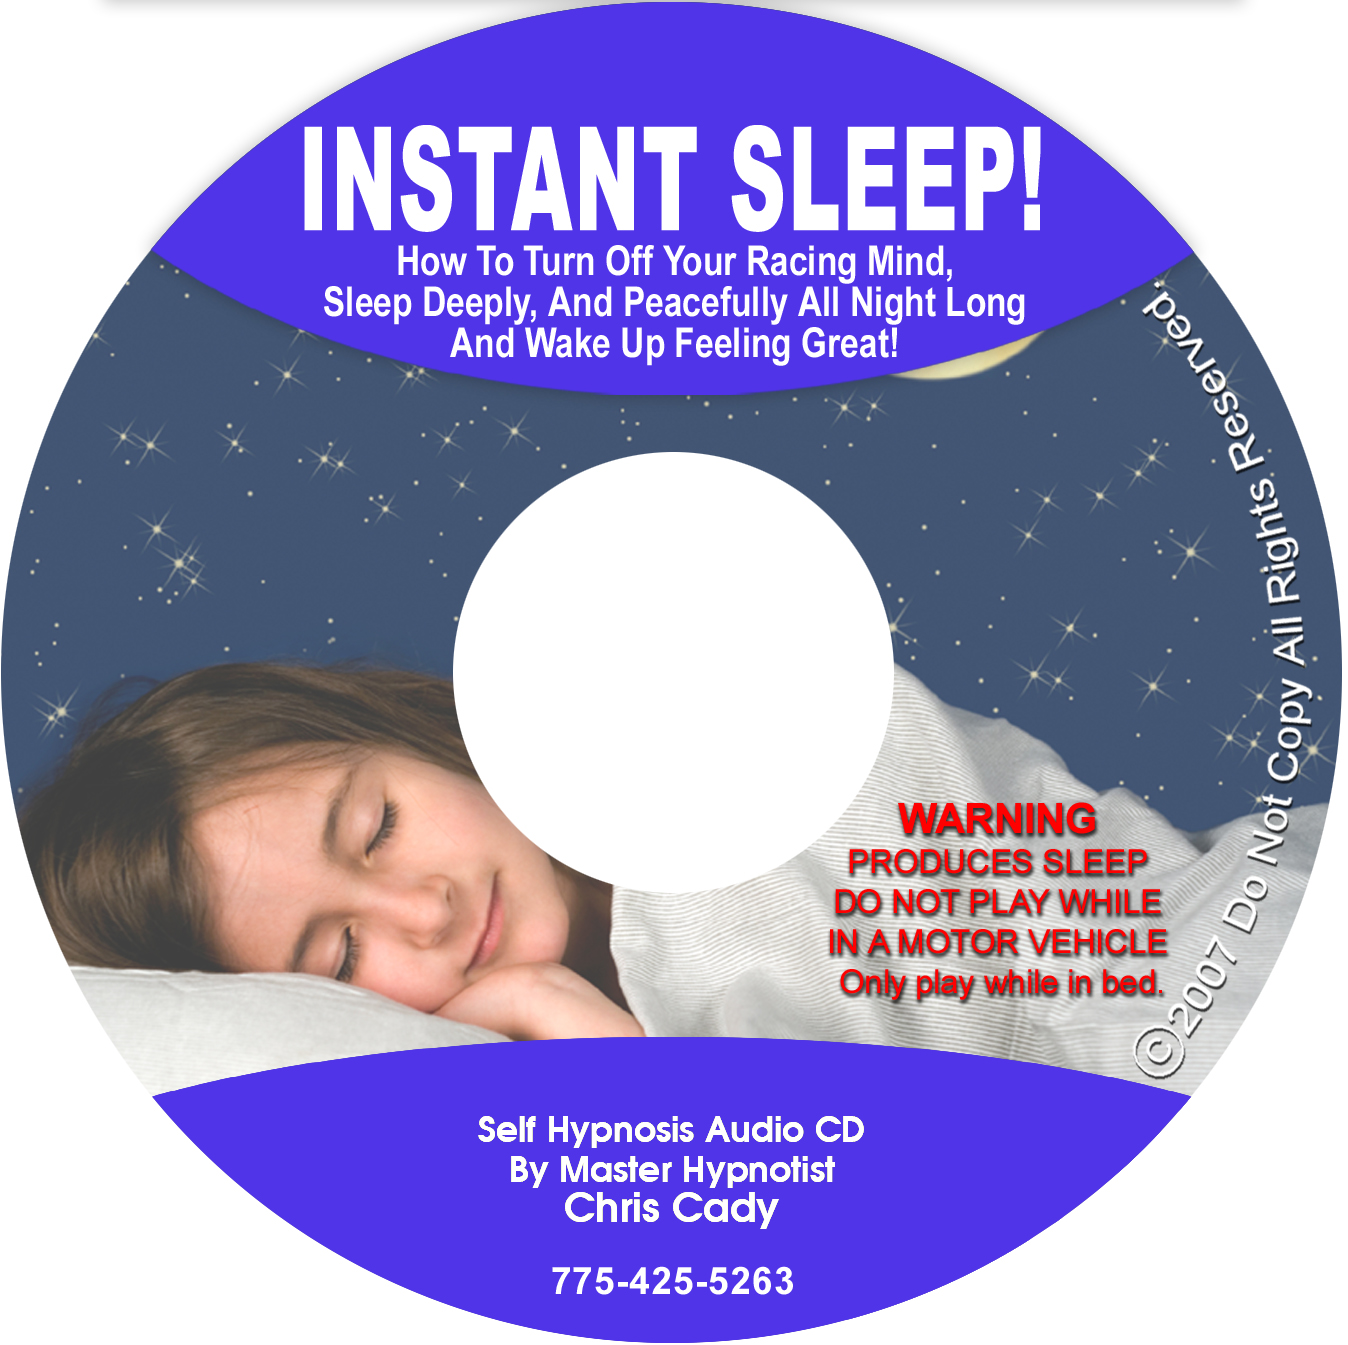 sleep cure insomnia with hypnosis cd